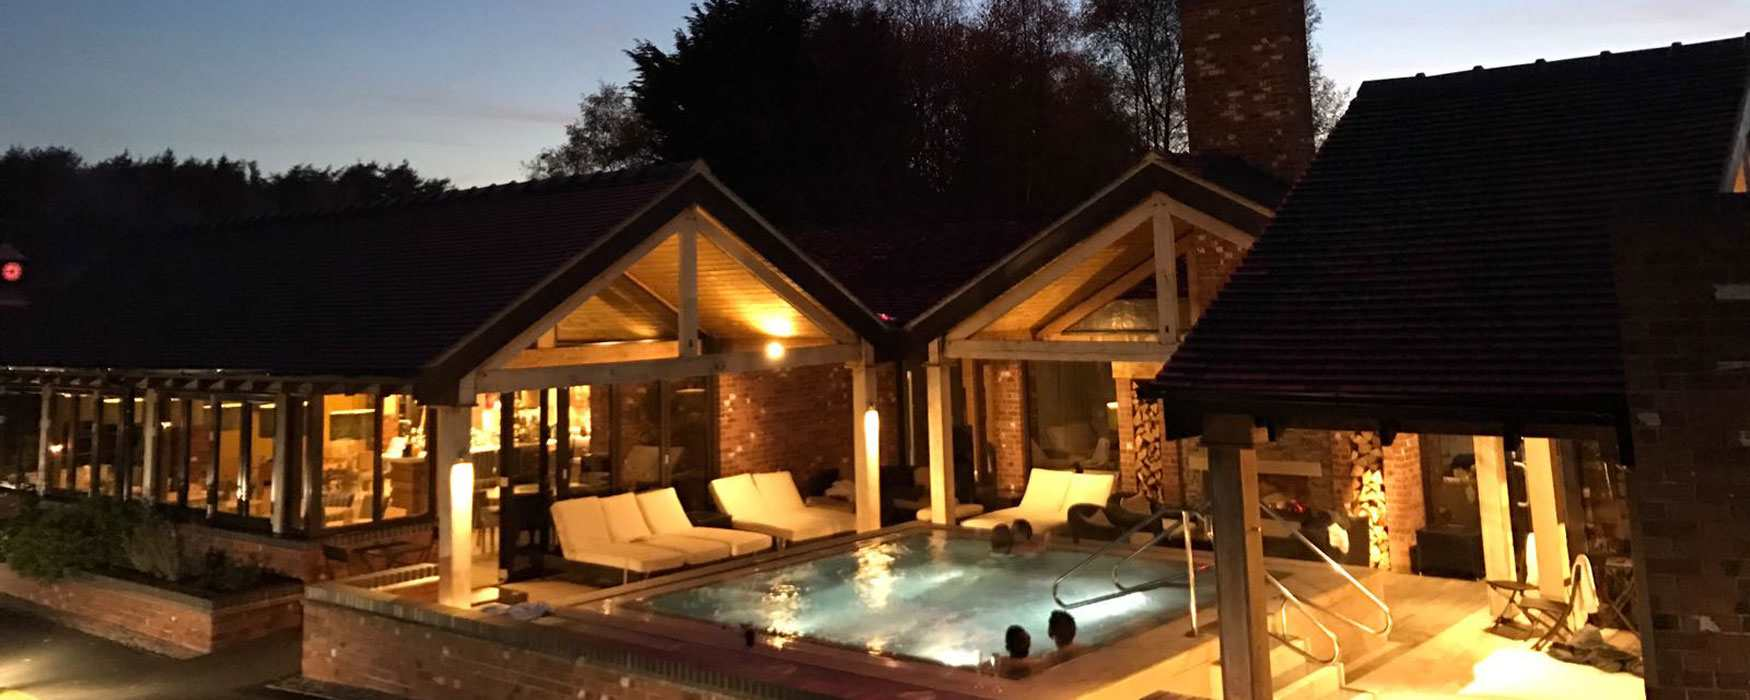 Sumptuous spa stays to revive and renew